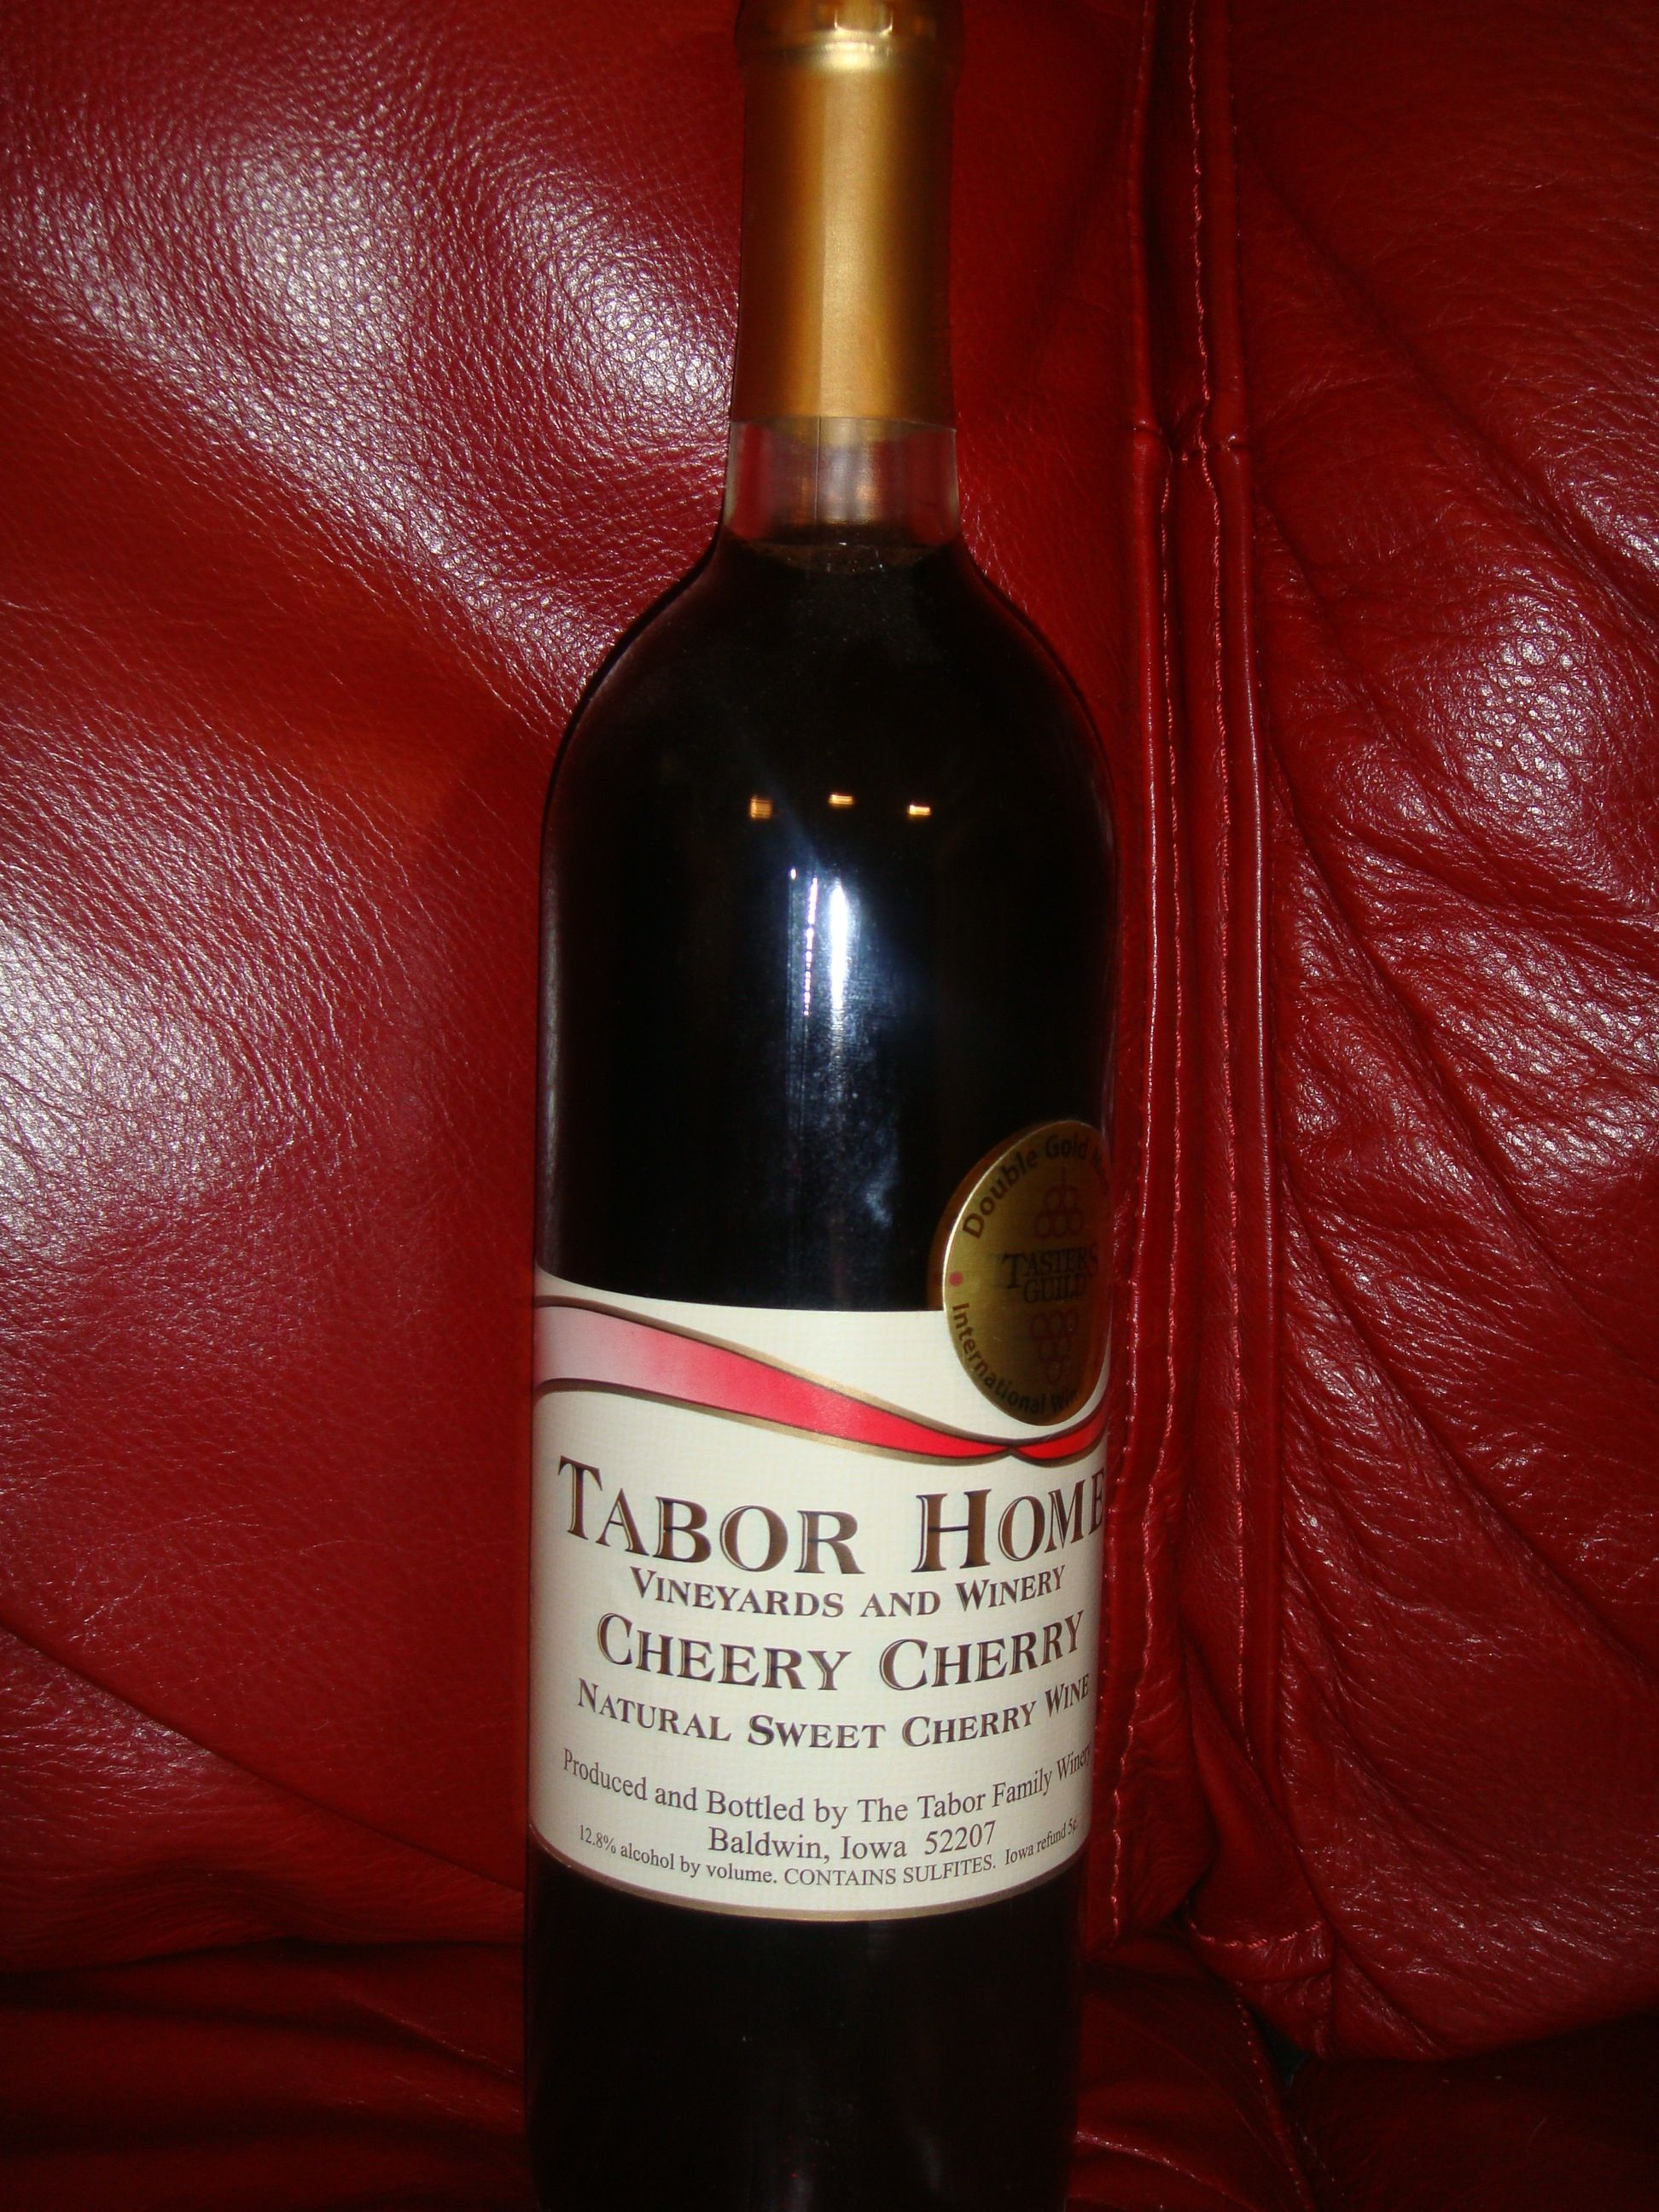 Cheery Cherry Natural Sweet Cherry Wine By Tabor Home Vineyards And Winery Cherry Wine Wine Distillery